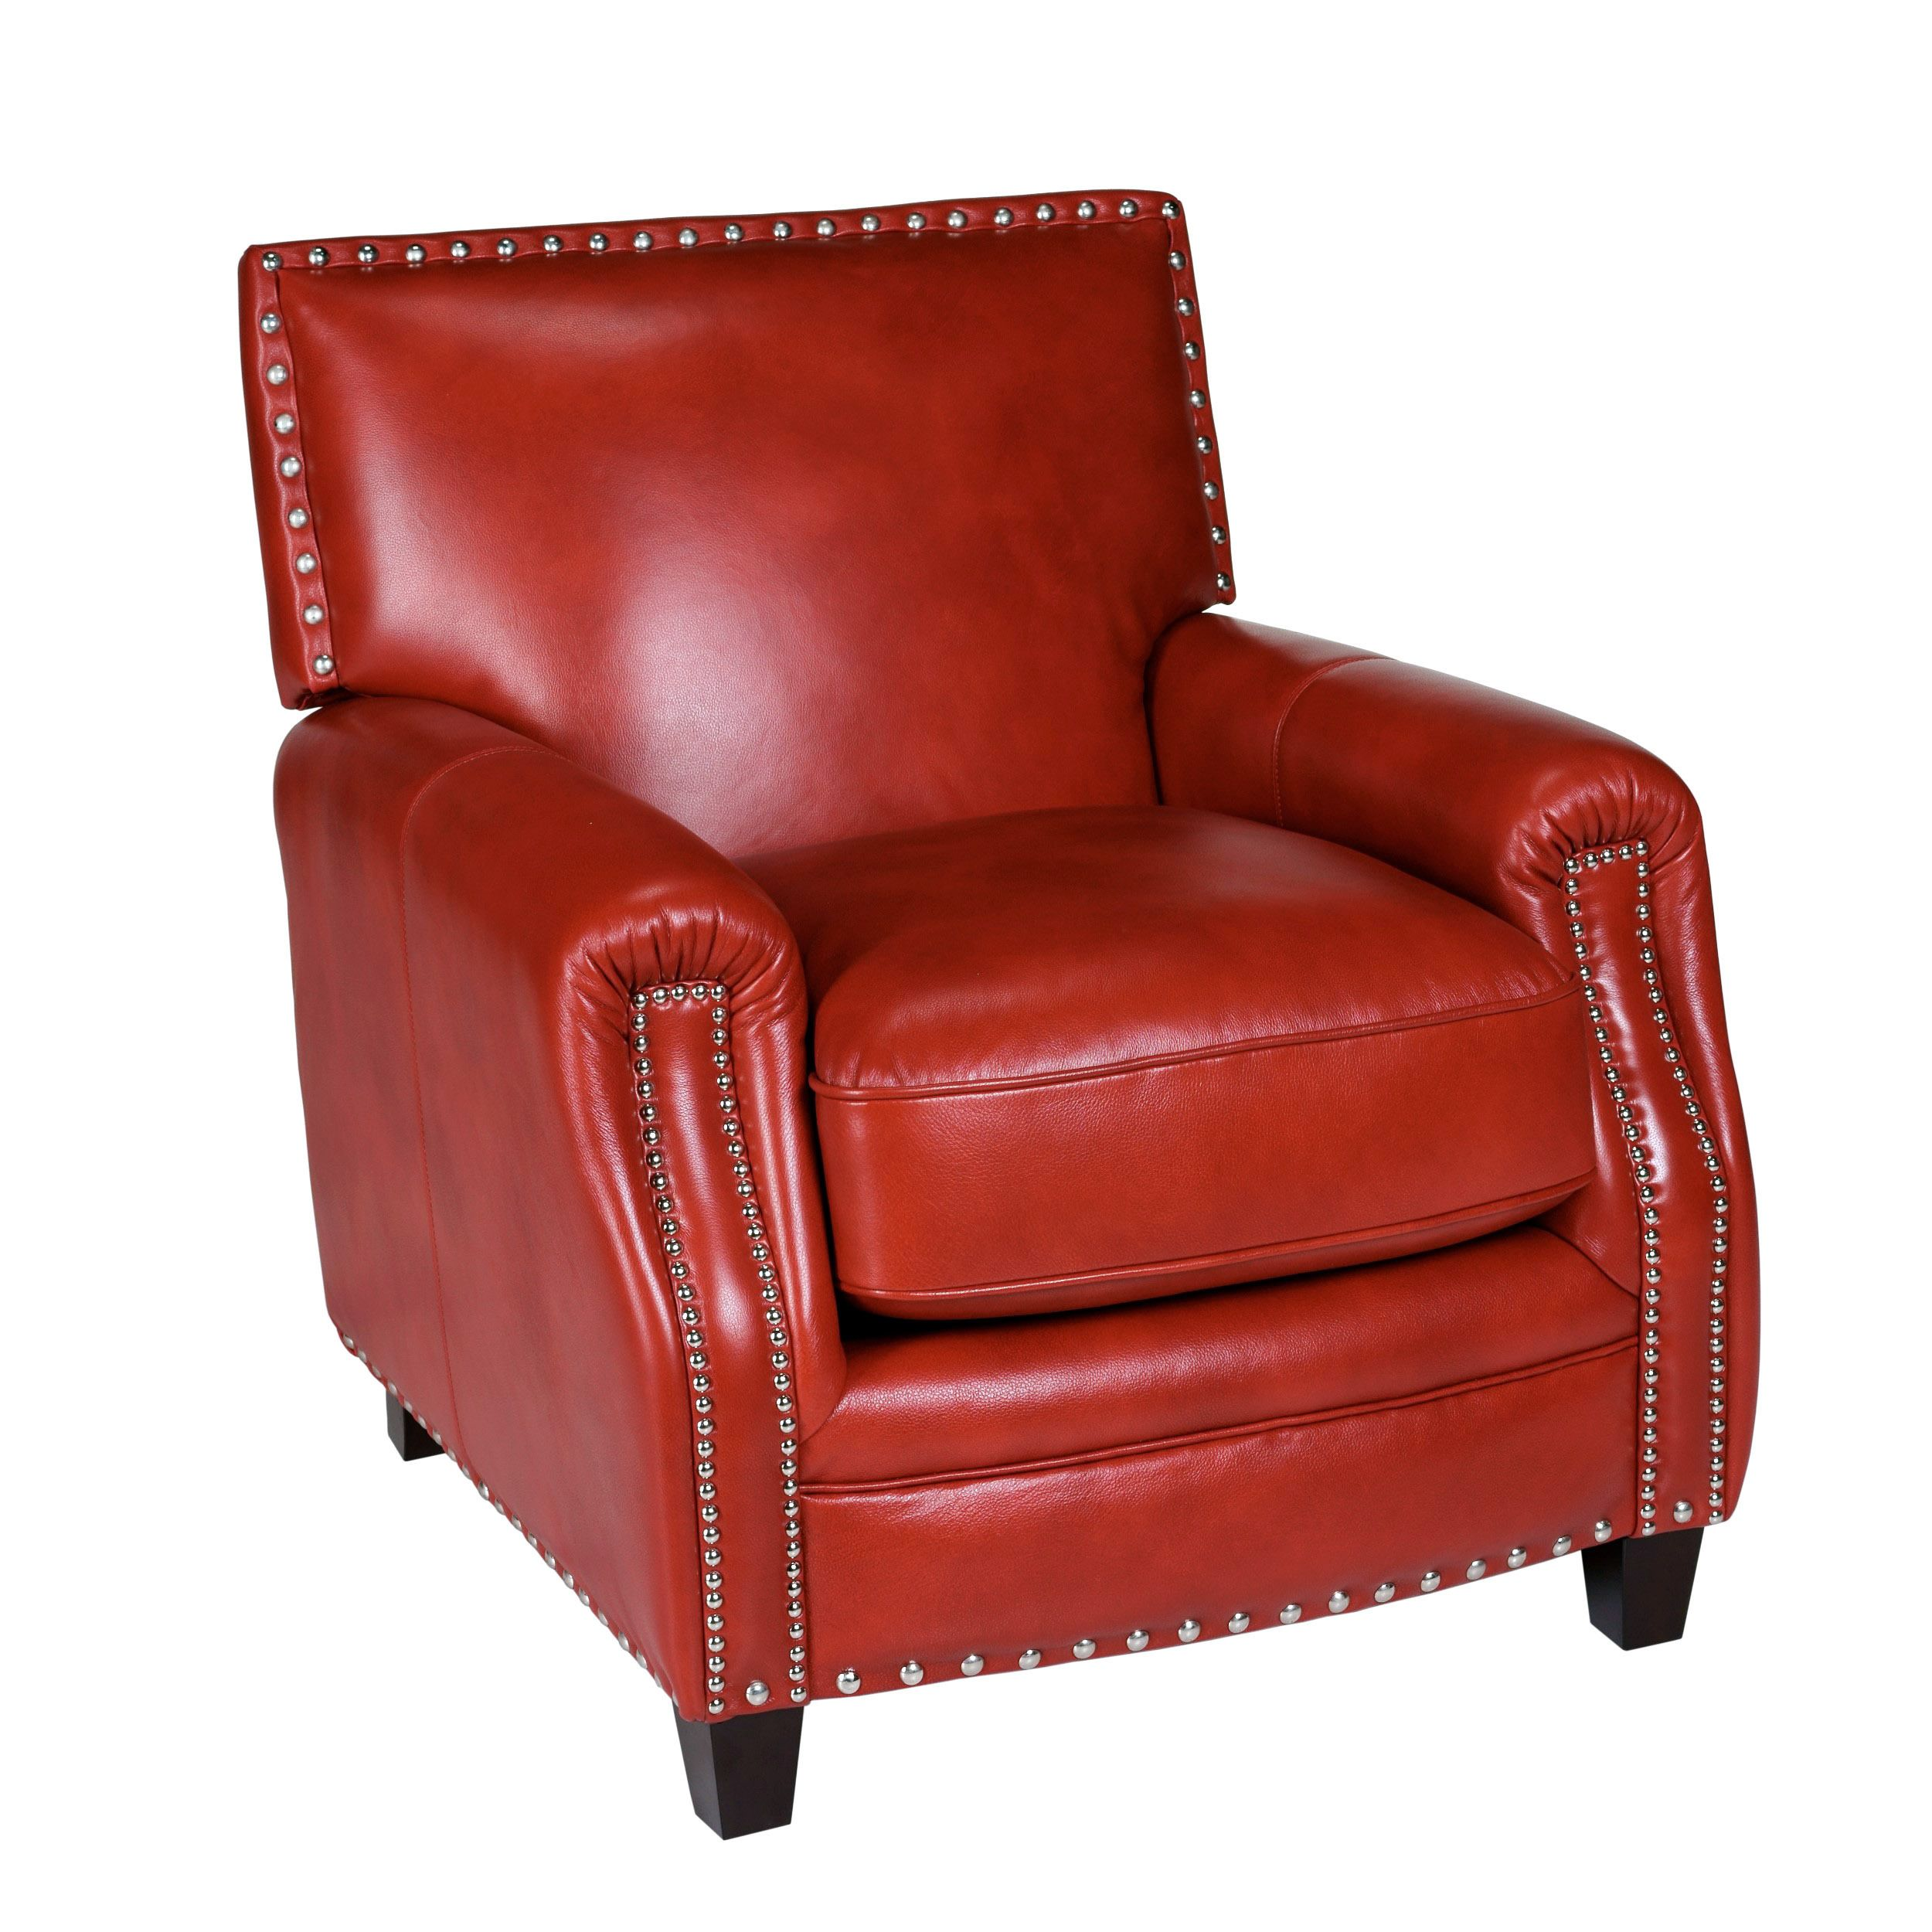 Accent Chairs, Southwestern Recliner Chairs U0026 Rocking Recliners : Lounge  Comfortably In One Of These Recliners Or Rocker Chairs. These Recliners  Allow You ... Good Looking